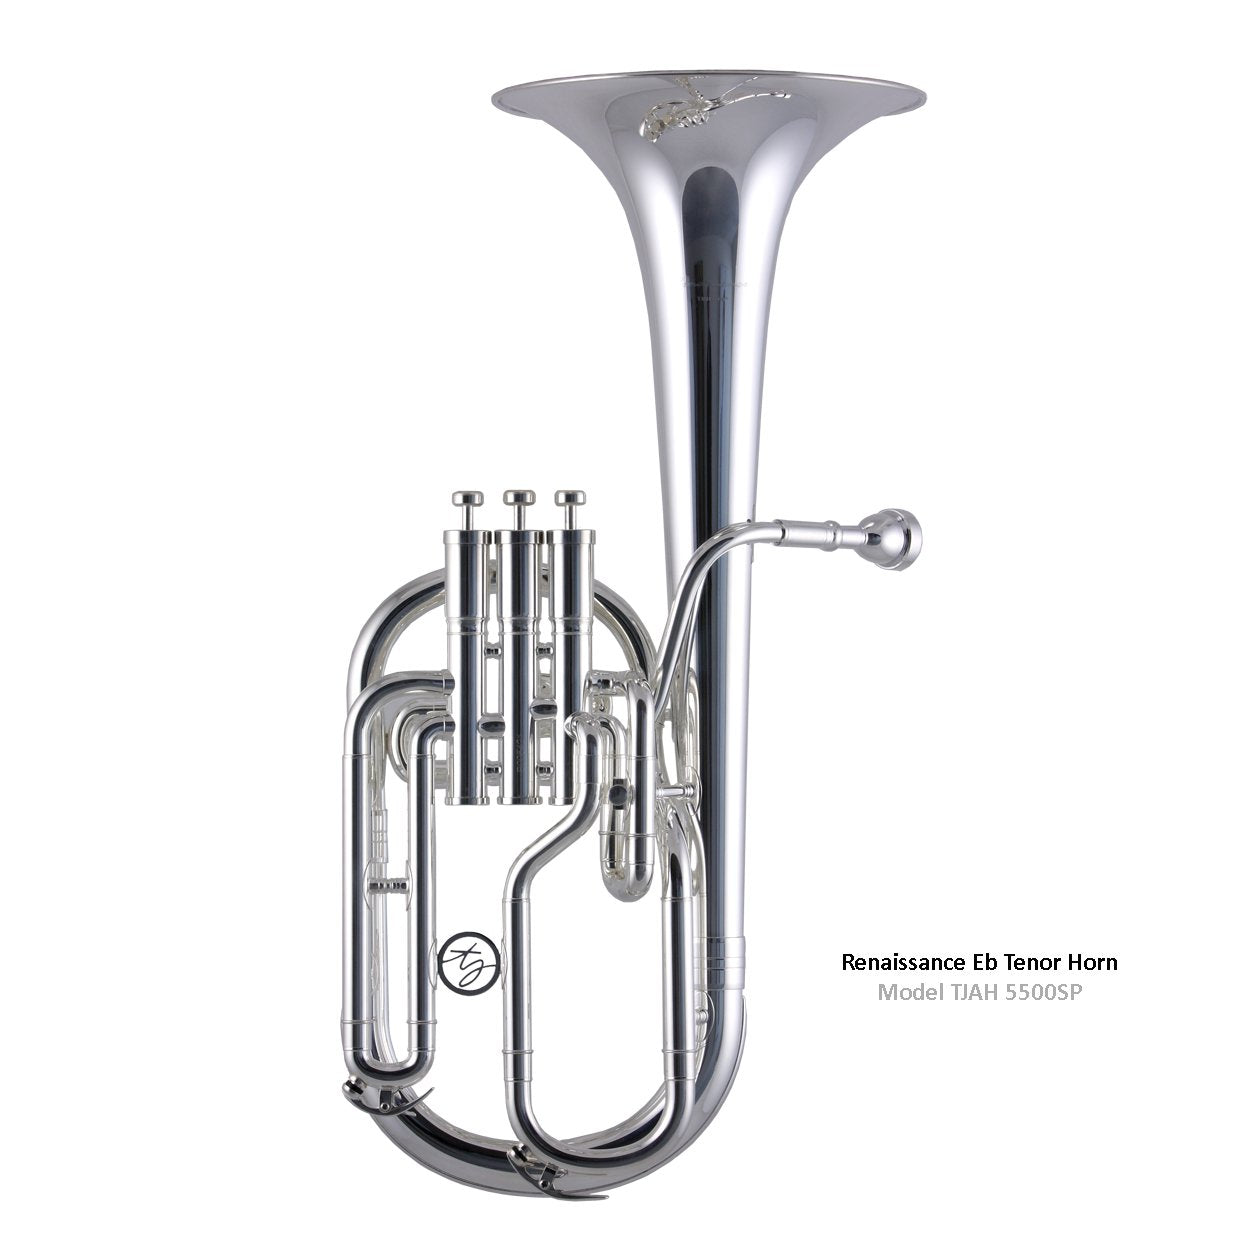 Trevor James - 5500SP Renaissance Eb Tenor Horn-Tenor Horn-Trevor James-Music Elements